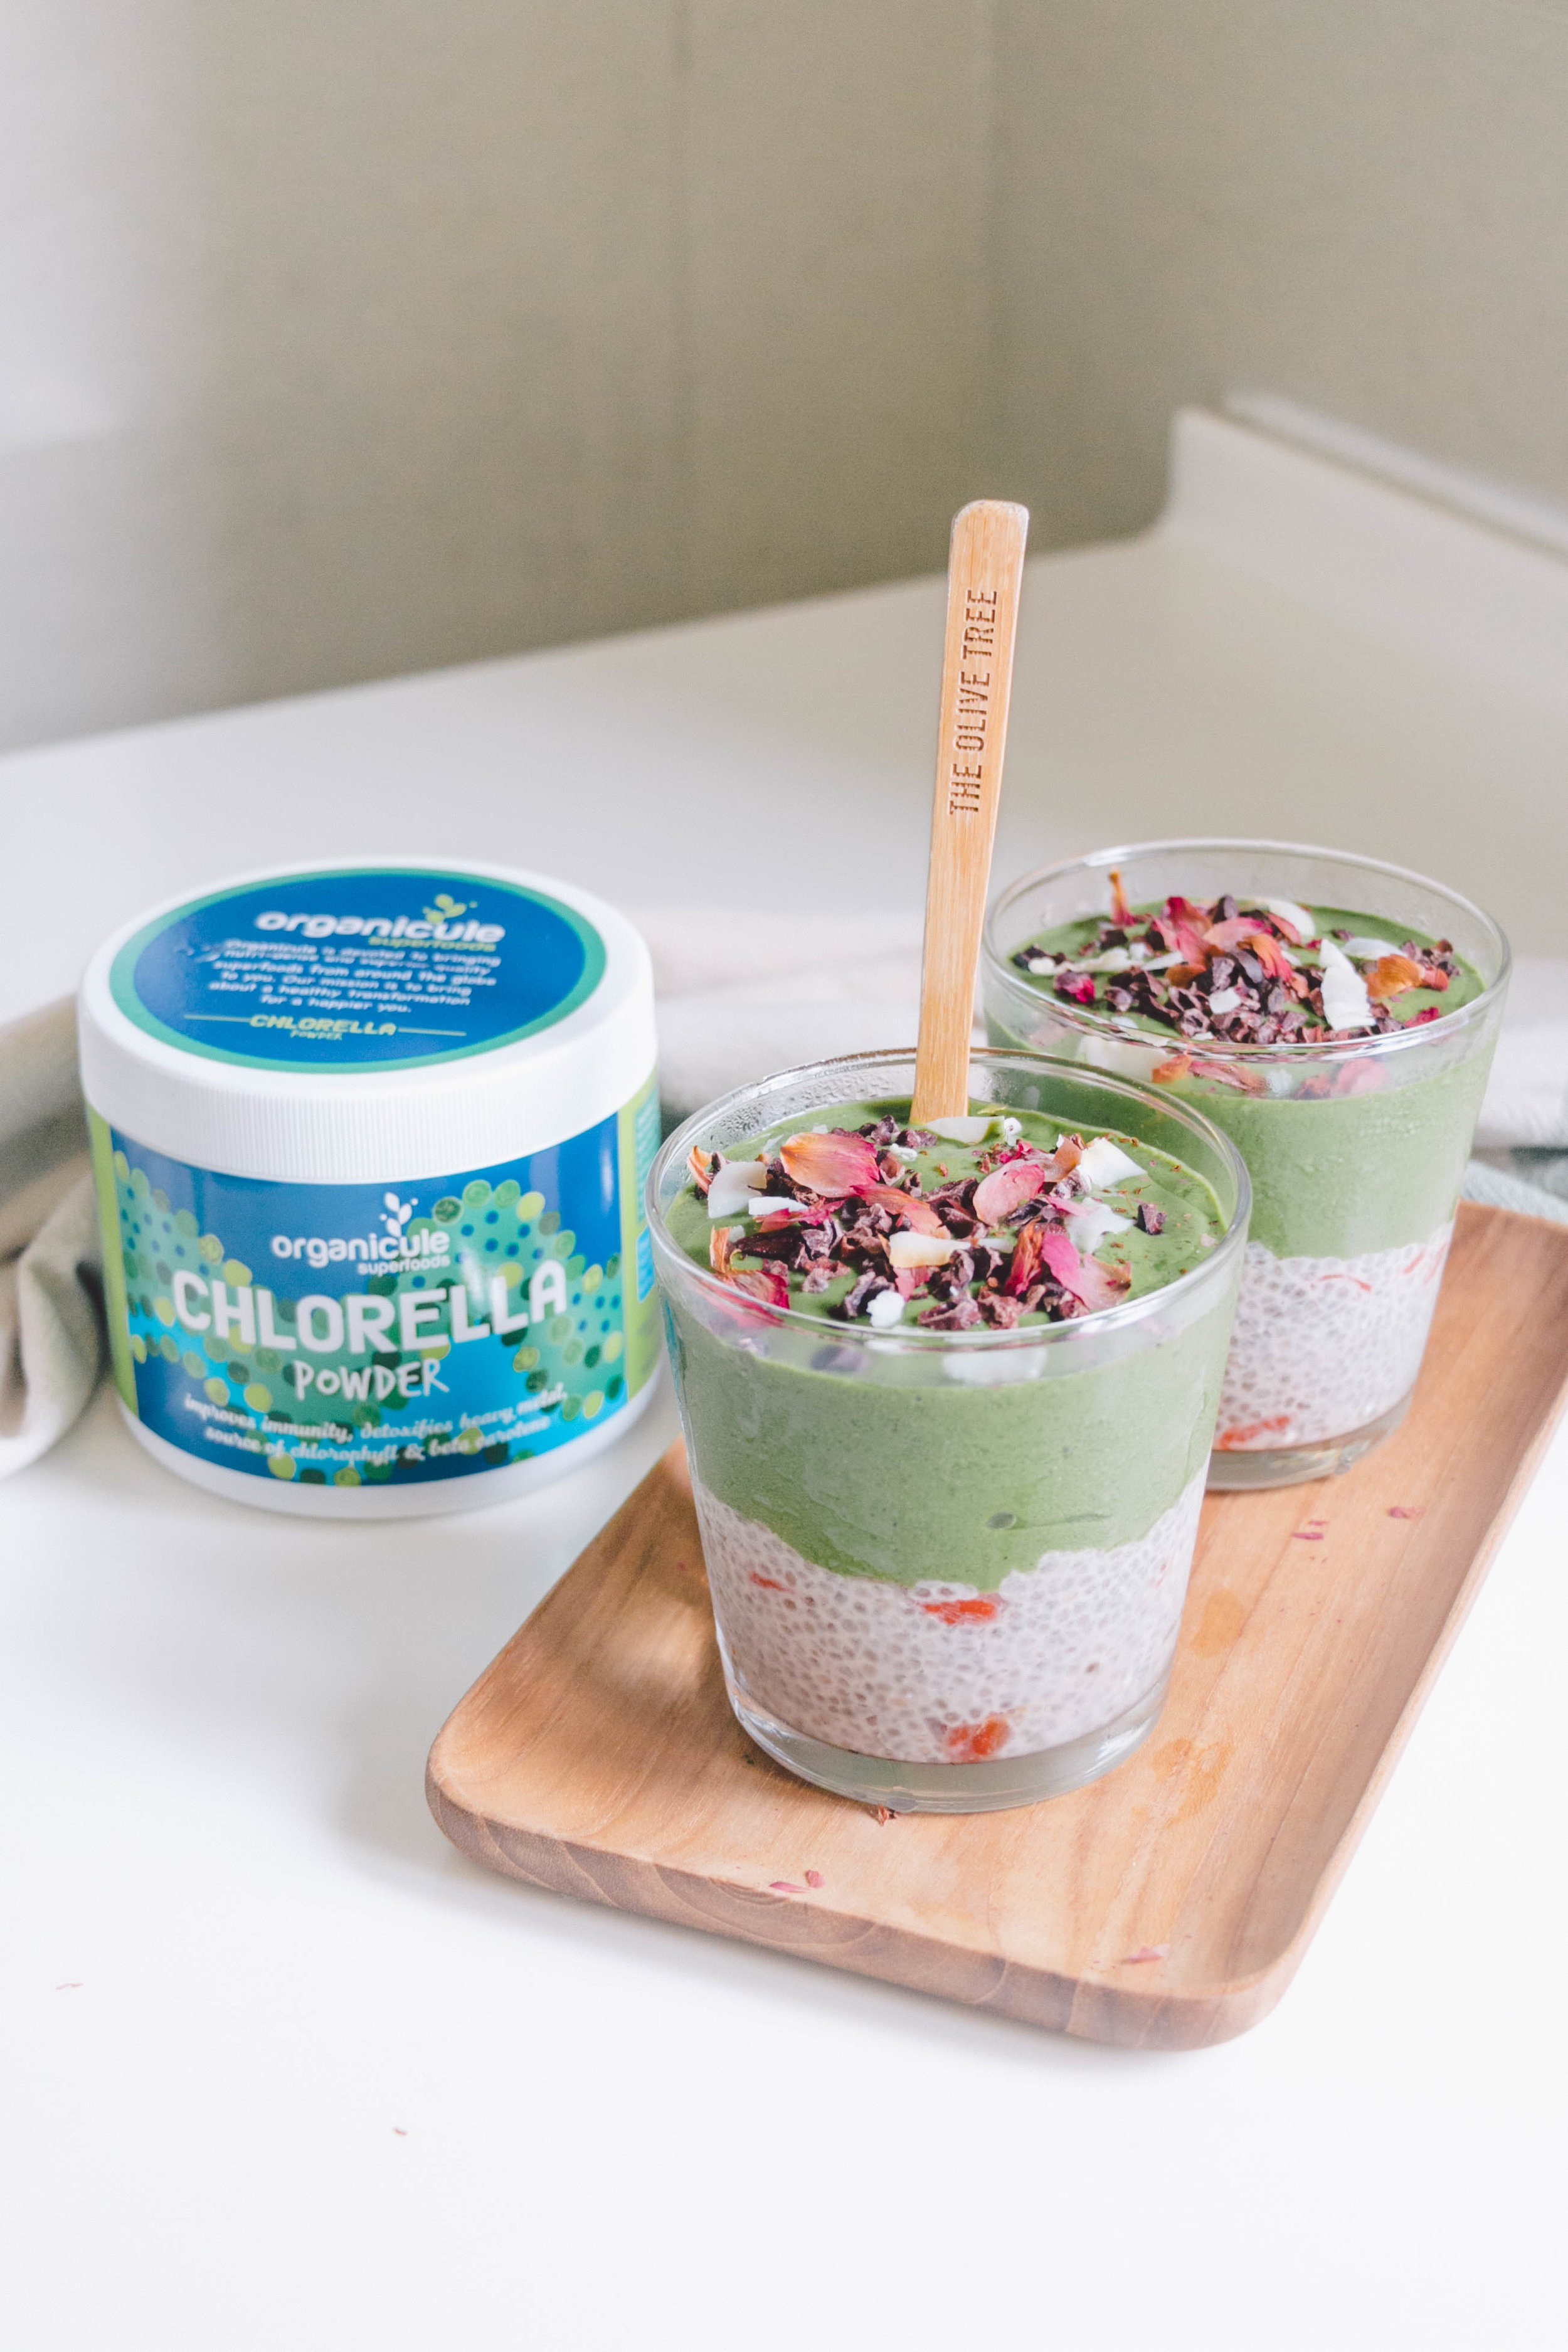 Method: - 1. Make chia pudding. Make the chia pudding first by putting all the Chia Pudding ingredients in a jar. Stir until well combined and cover the jar. Leave it in the fridge for at least 3 hours, preferably overnight.2. Make smoothie. Add all the Green Smoothie ingredients into a blender (preferably high powered) and blend until smooth. Add more plant milk if needed.3. Assemble parfait. Divide the Chia Pudding evenly between 2 small glasses or jars. Pour the Green Smoothie on top of the chia pudding. Garnish with your favourite toppings and serve!